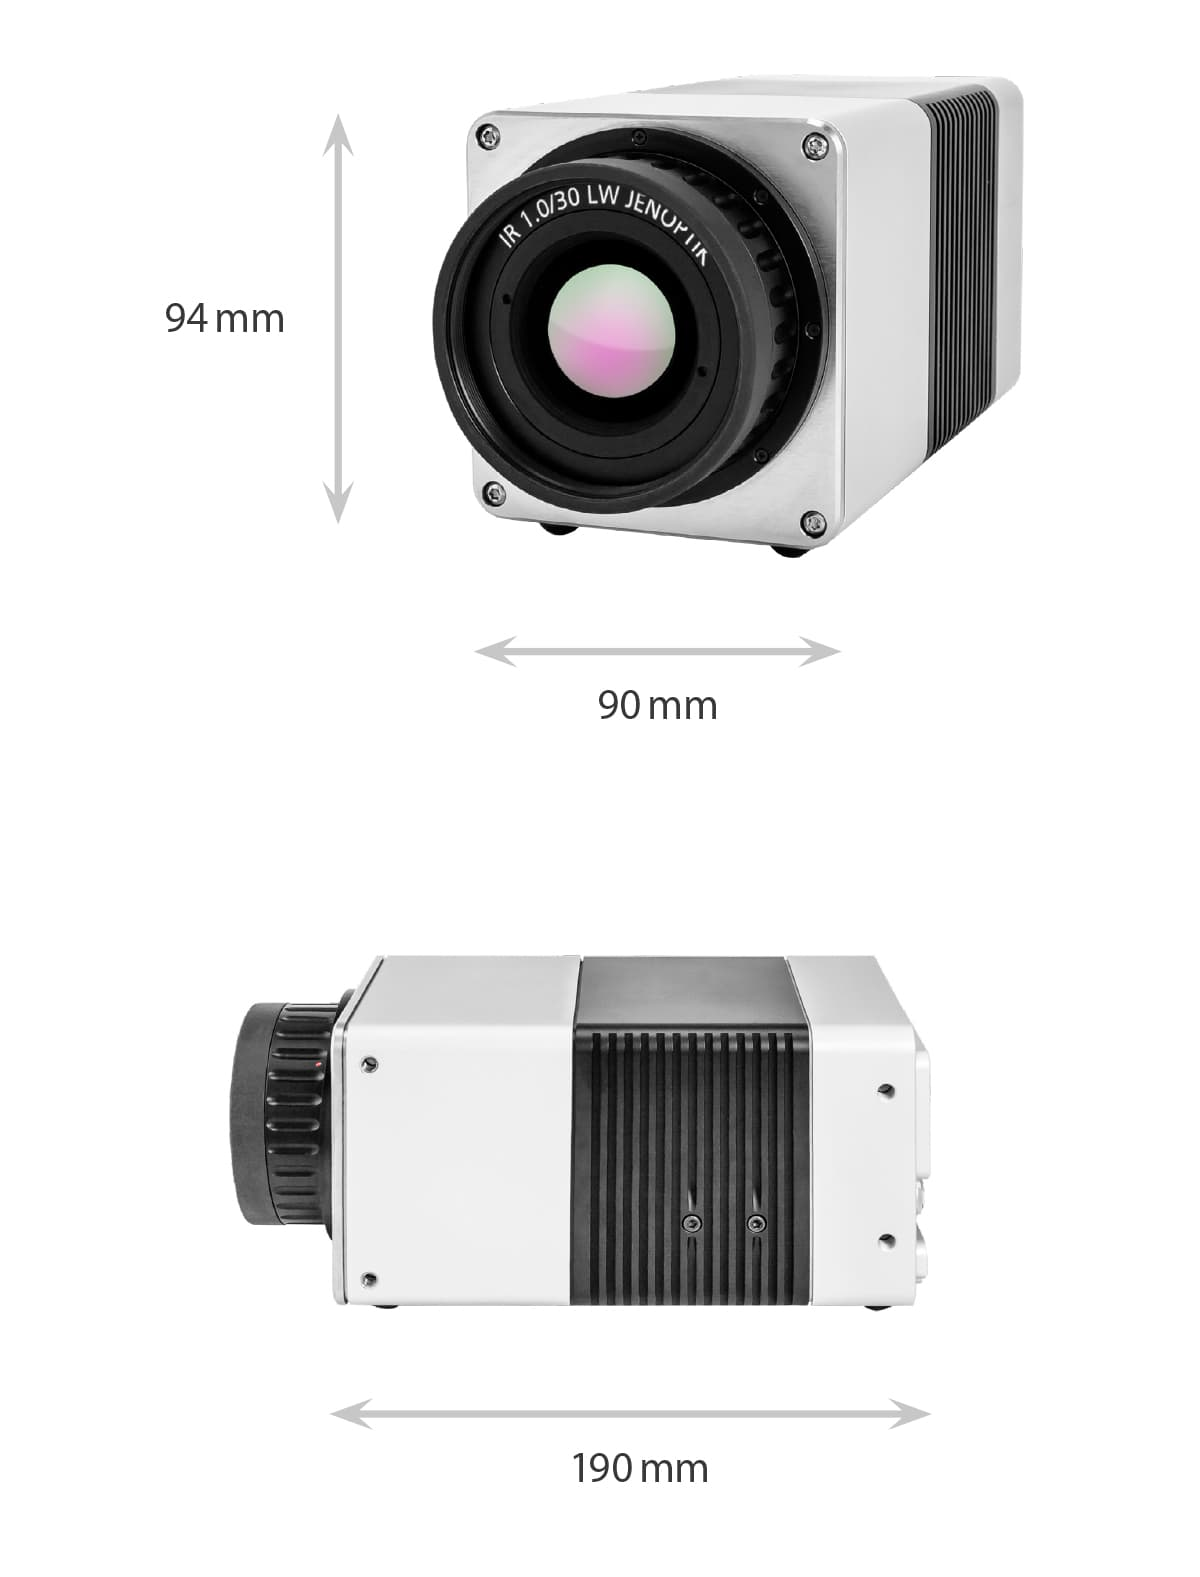 Dimensions of the VarioCAM HD head